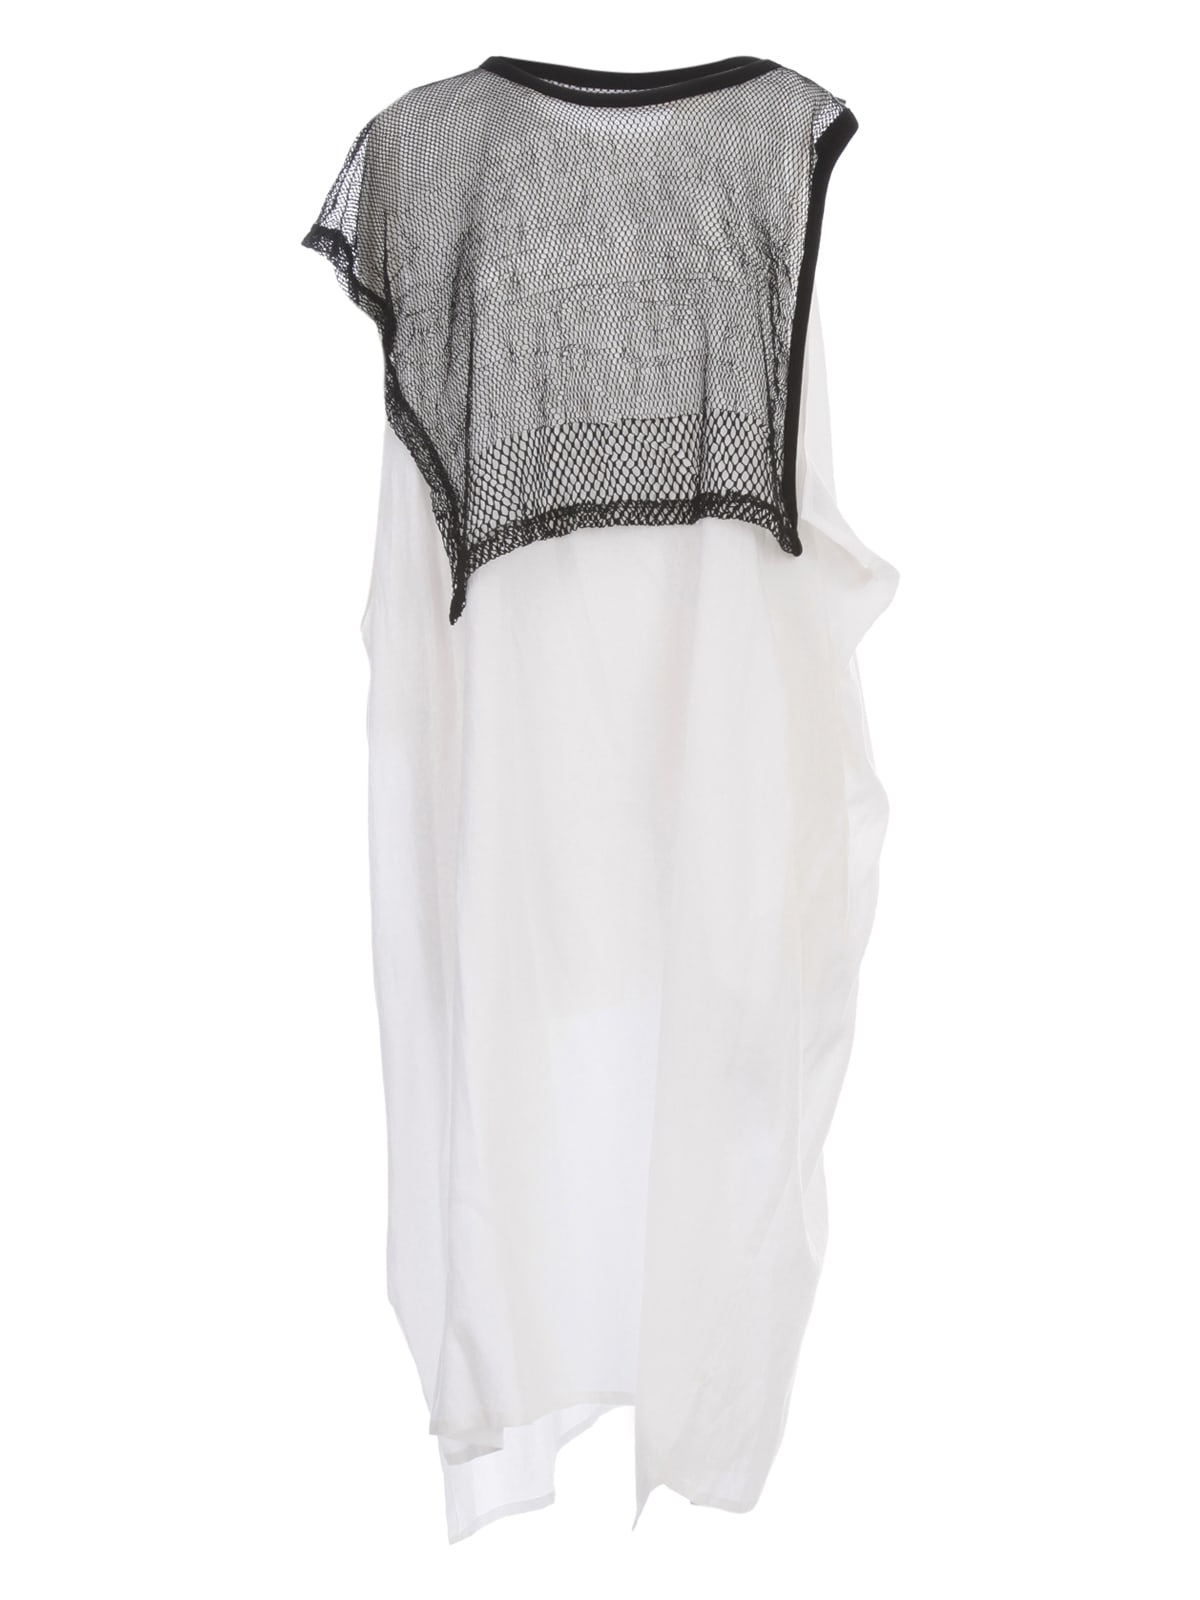 Buy Ys O Mesh Tops Dress W/s Crew Neck online, shop Ys with free shipping